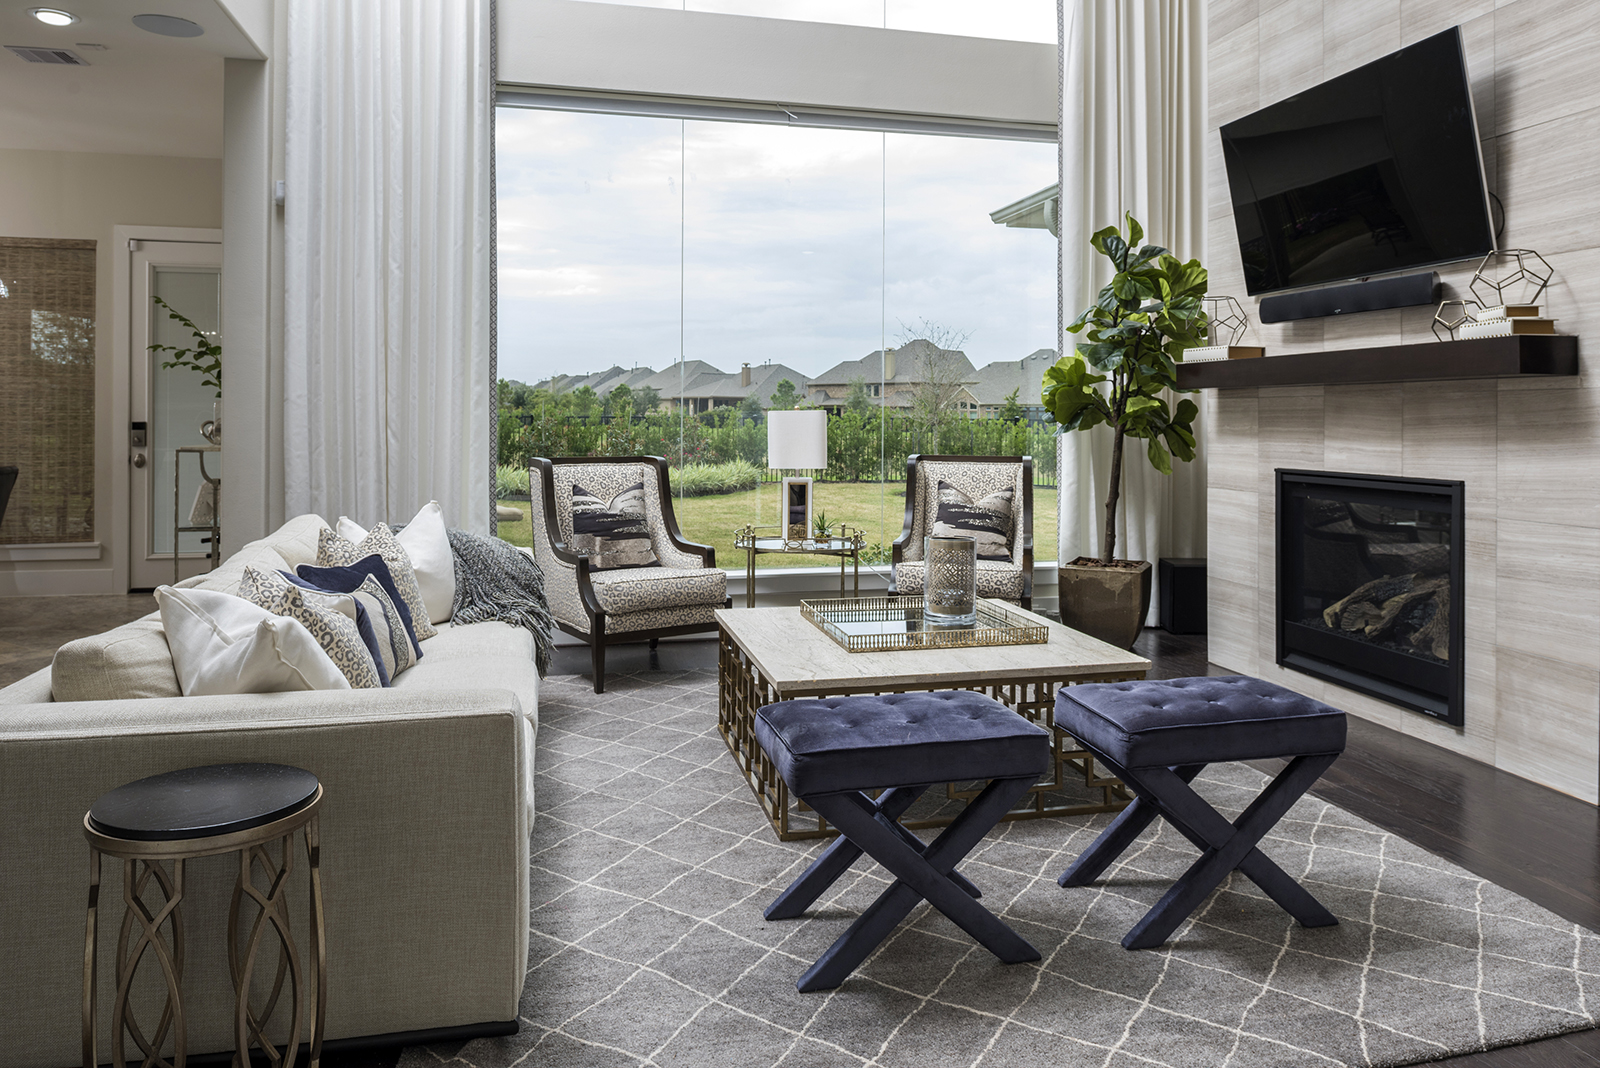 Living room interior design by Charbonneau Interiors